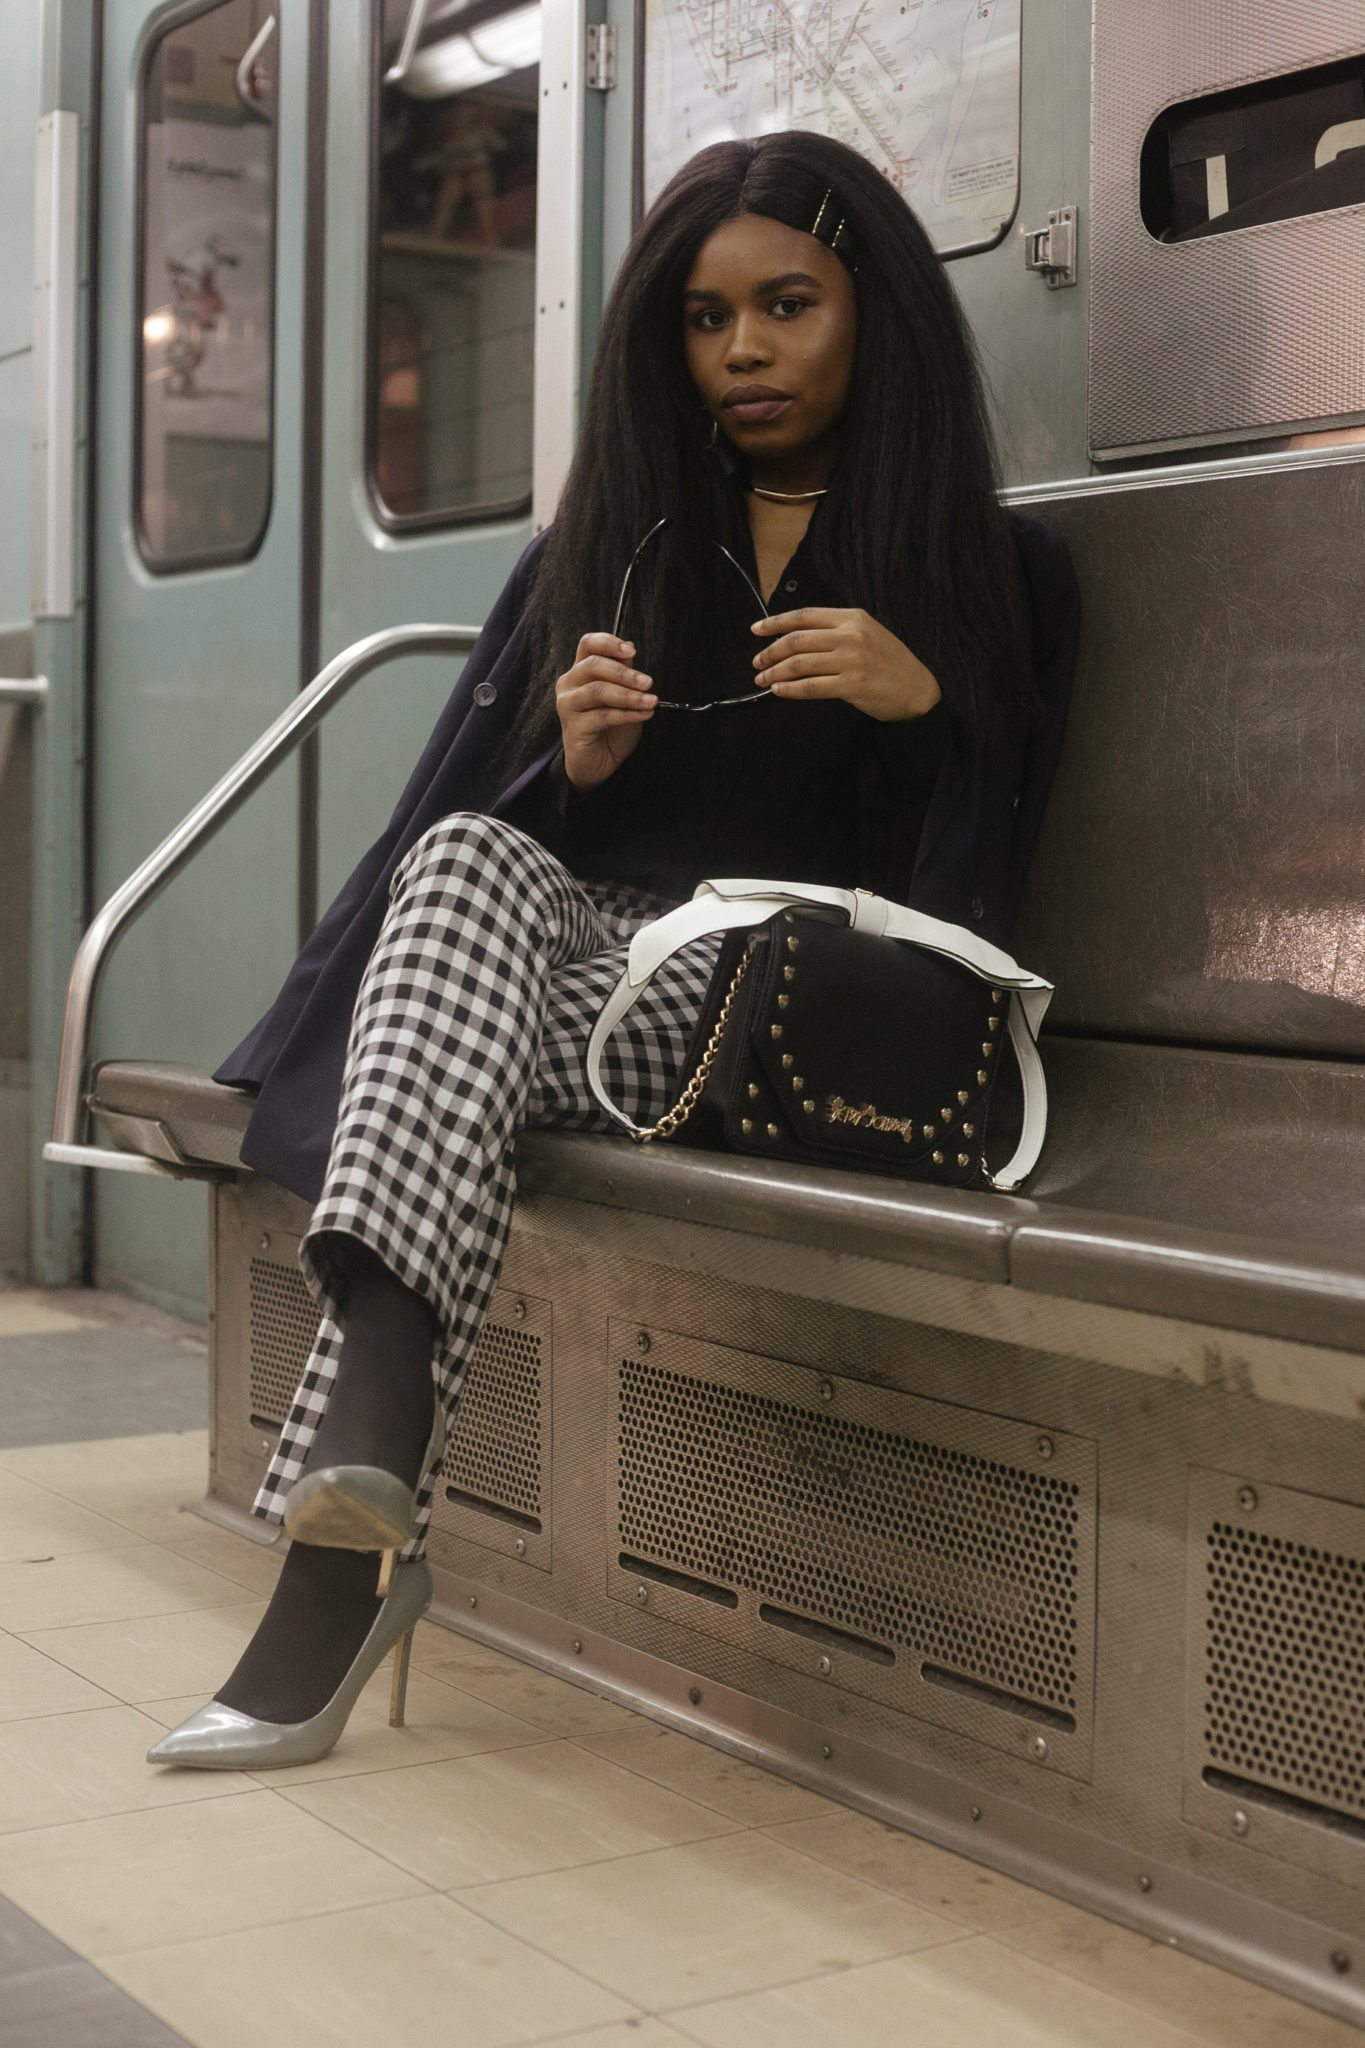 Girl in the subway photo